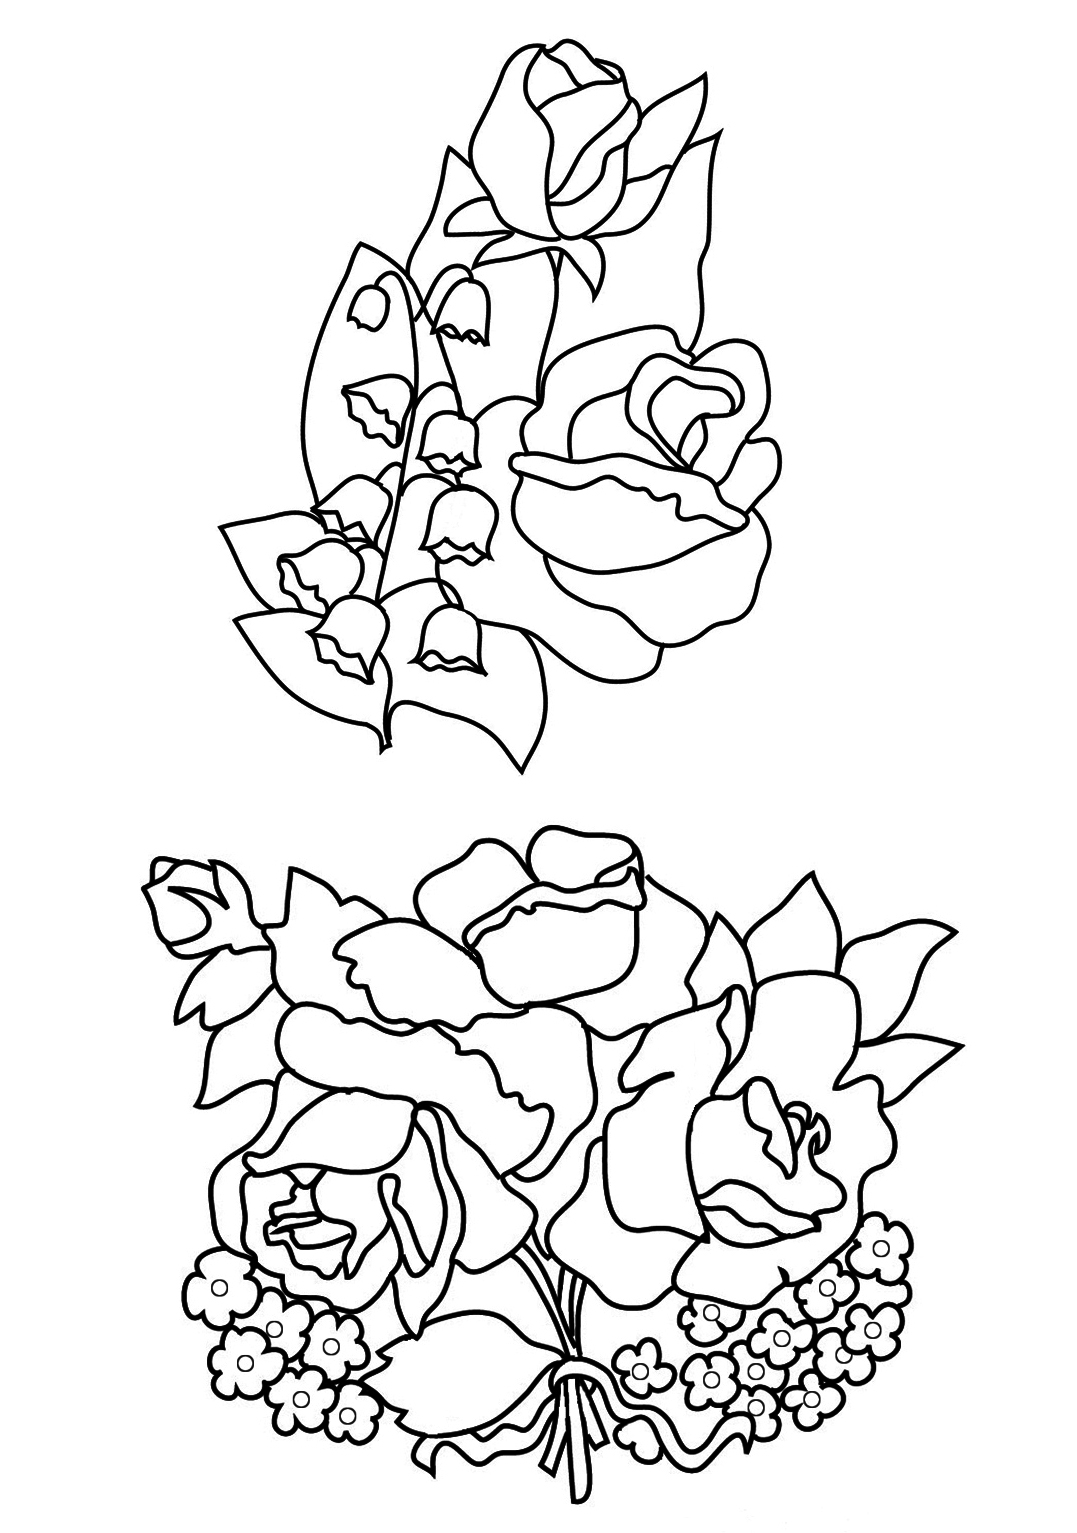 coloring flower flowers coloring pages coloringpages1001com coloring flower